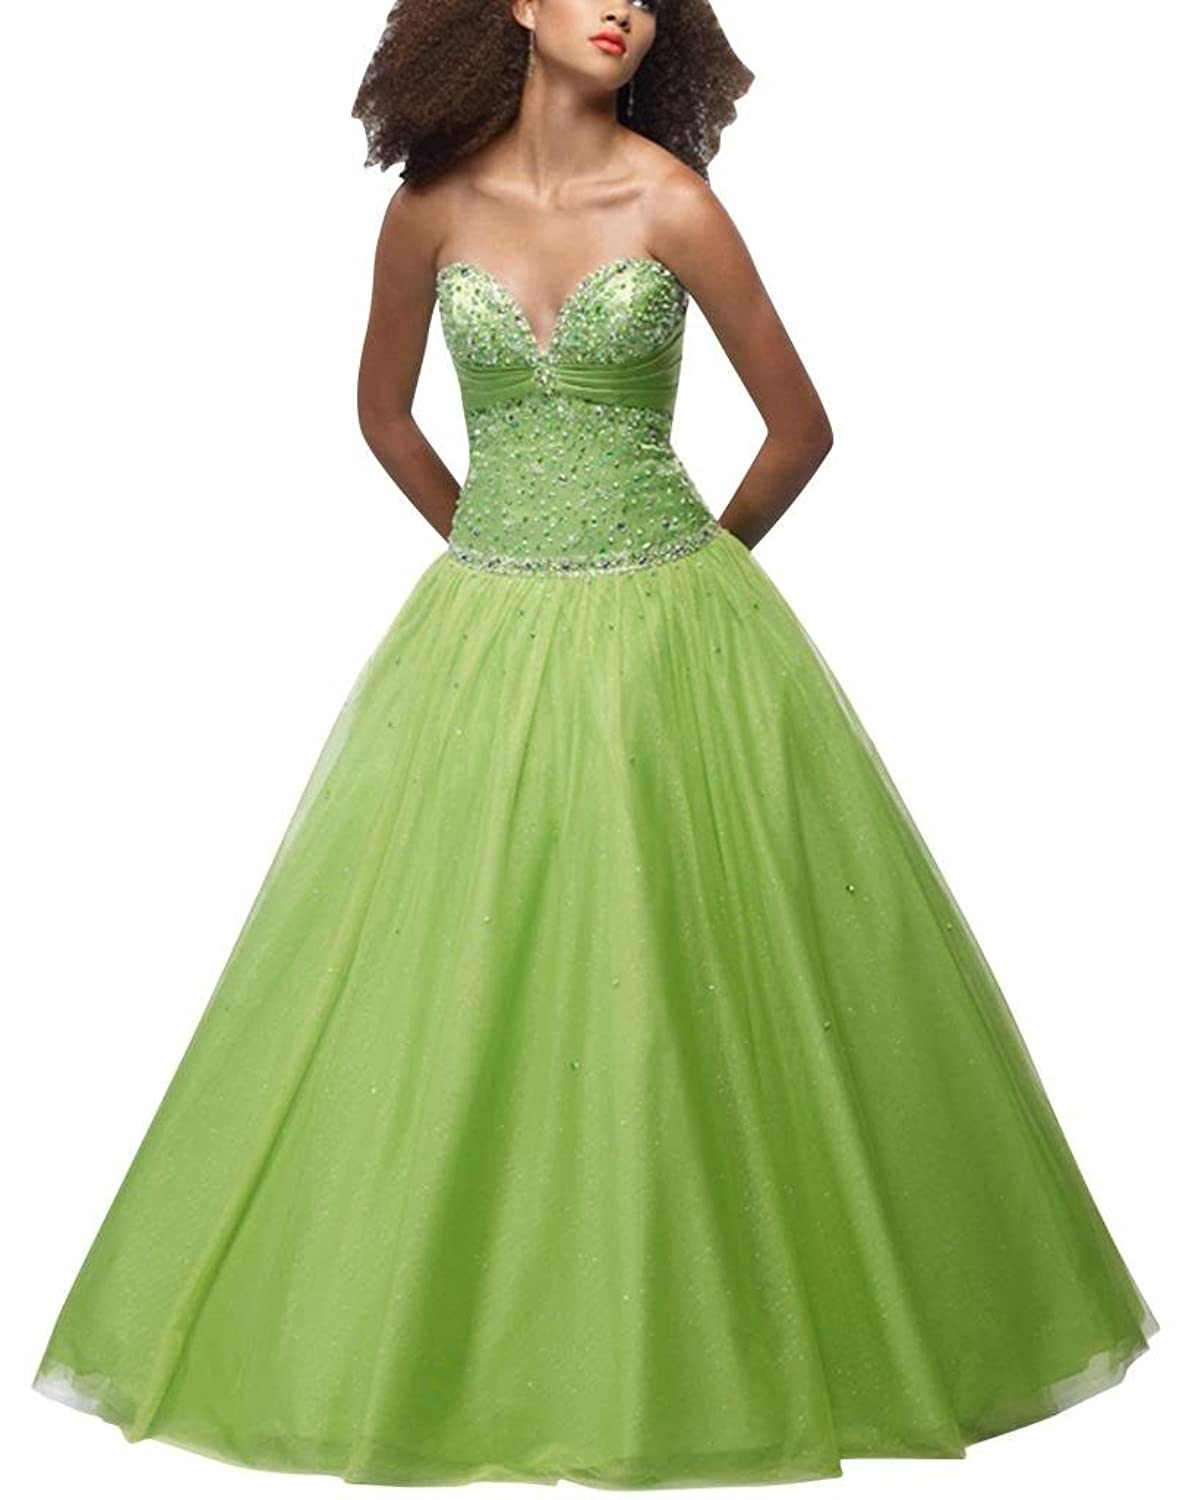 GEORGE BRIDE Green Ball Gown Sweetheart Floor-Length Tulle Prom Dress With Beaded Appliques